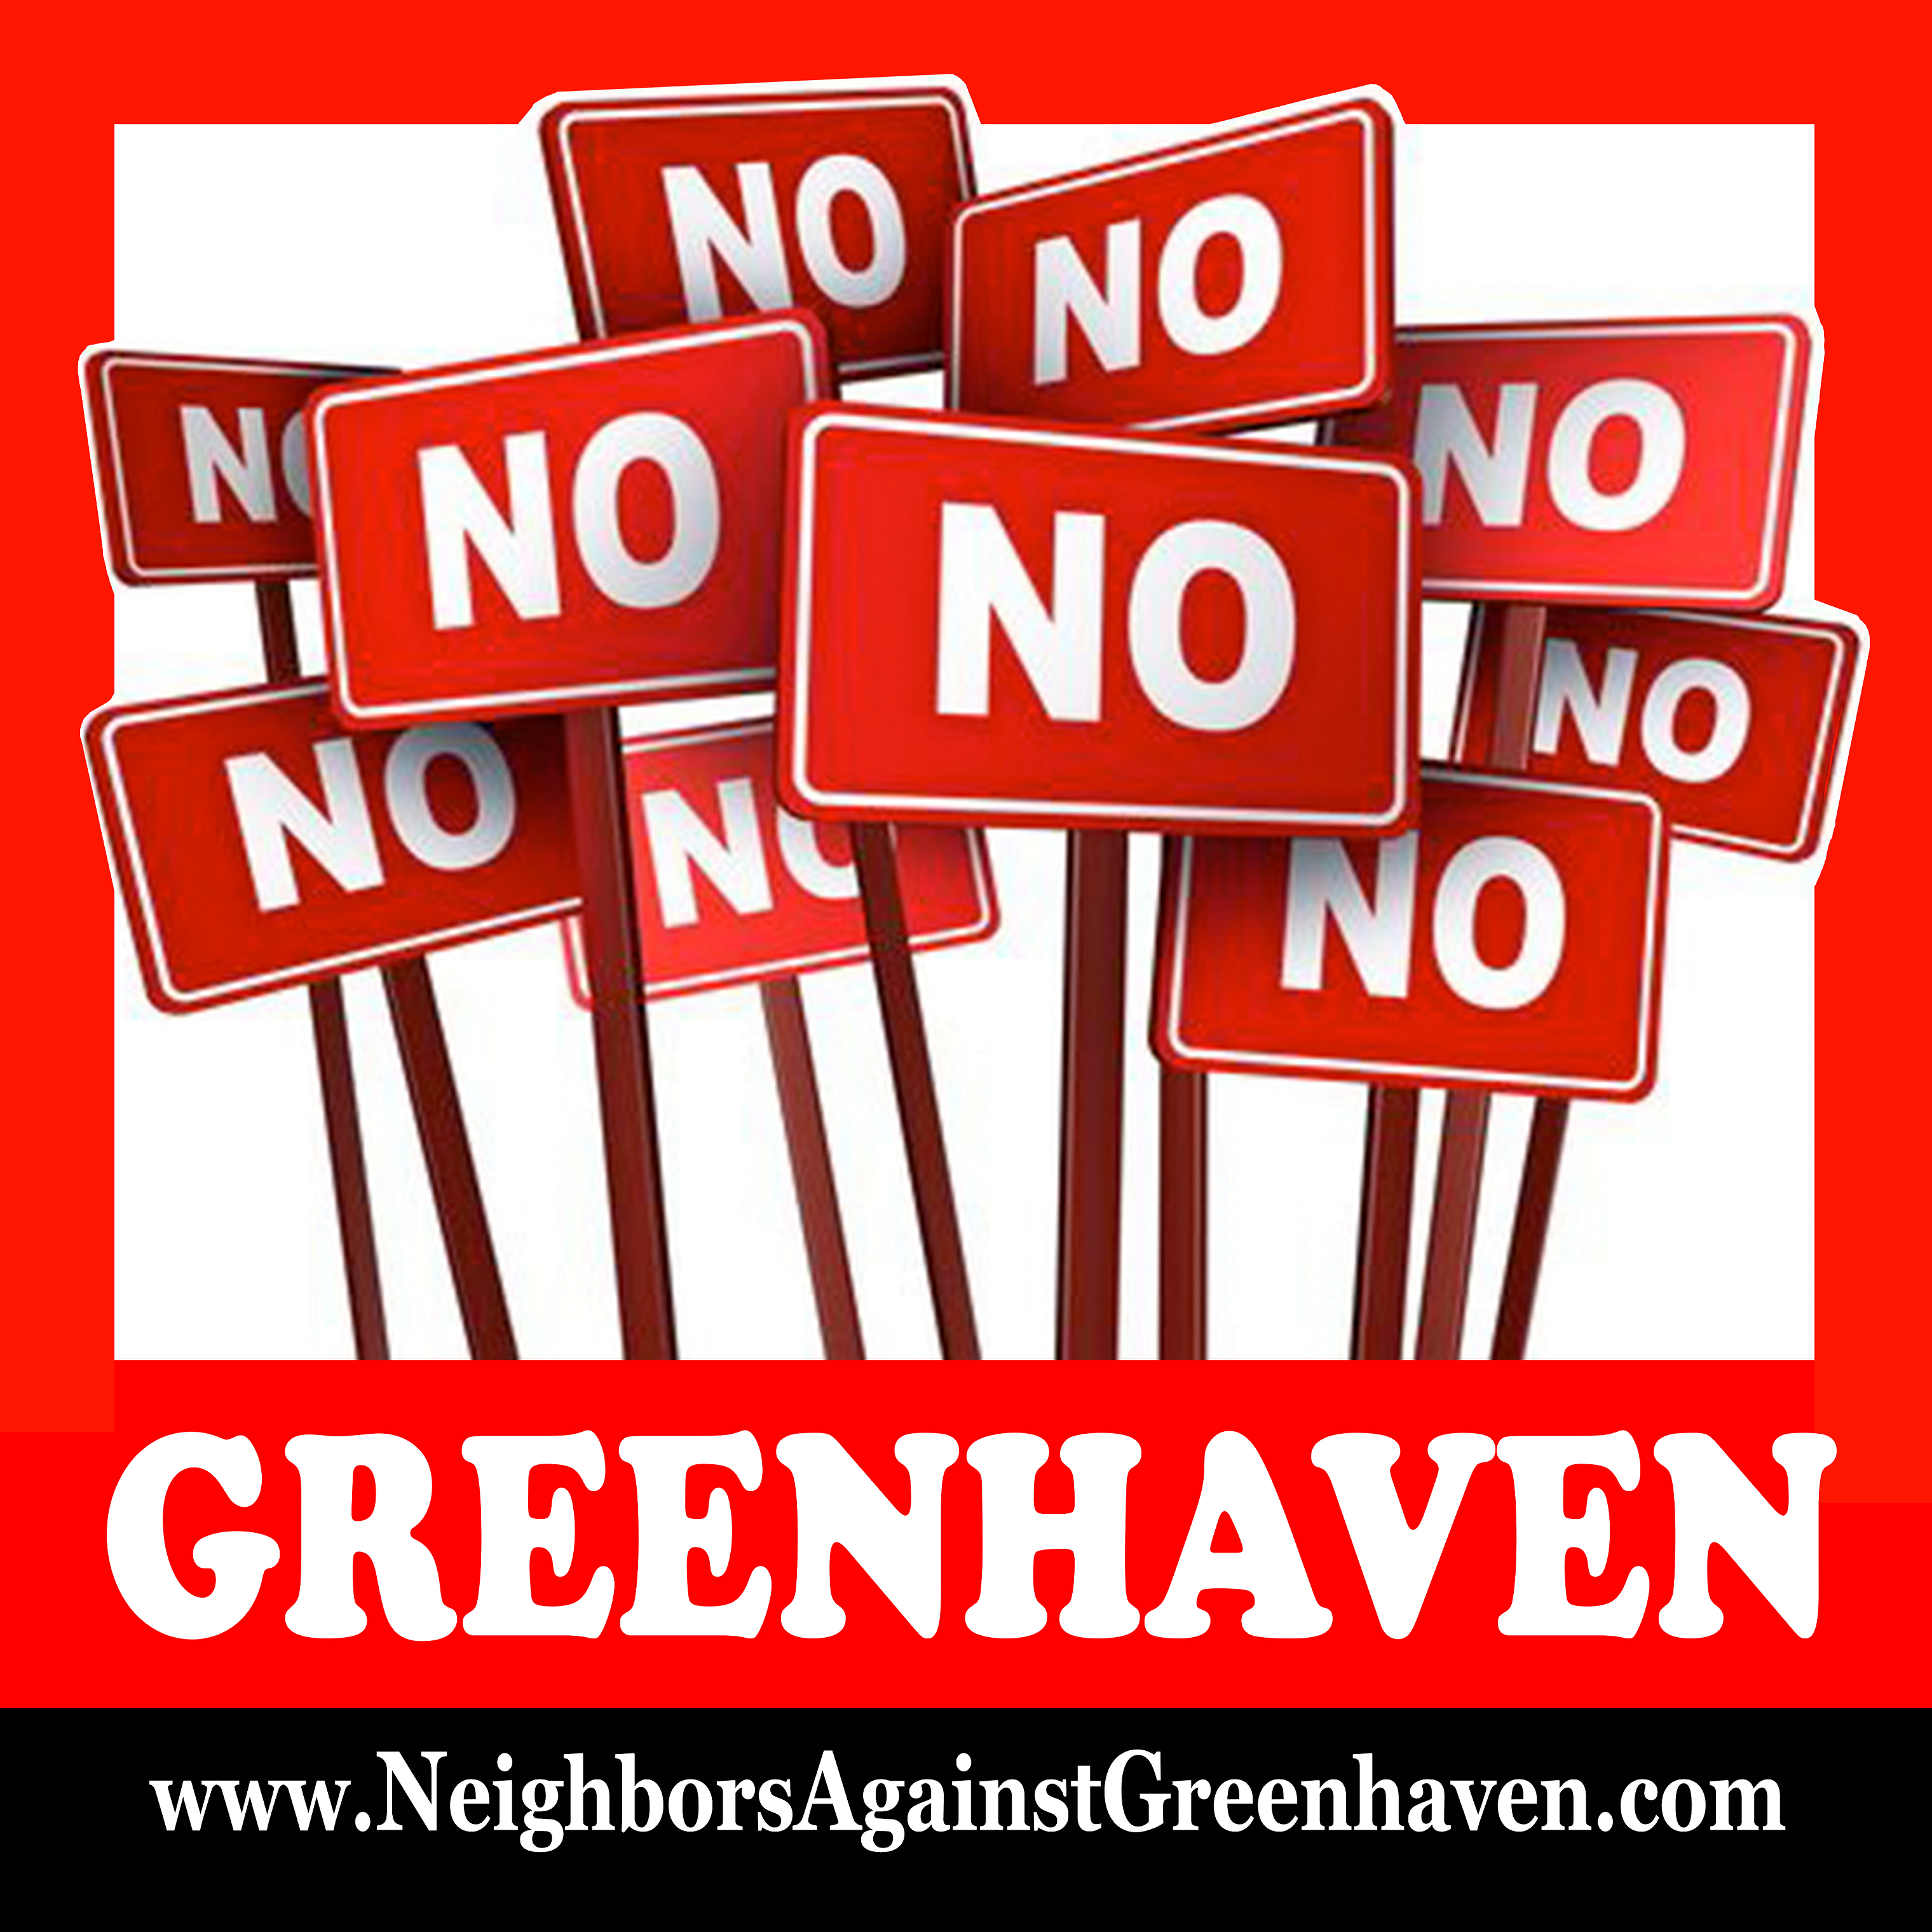 Neighbors Against Greenhaven Yard Sign